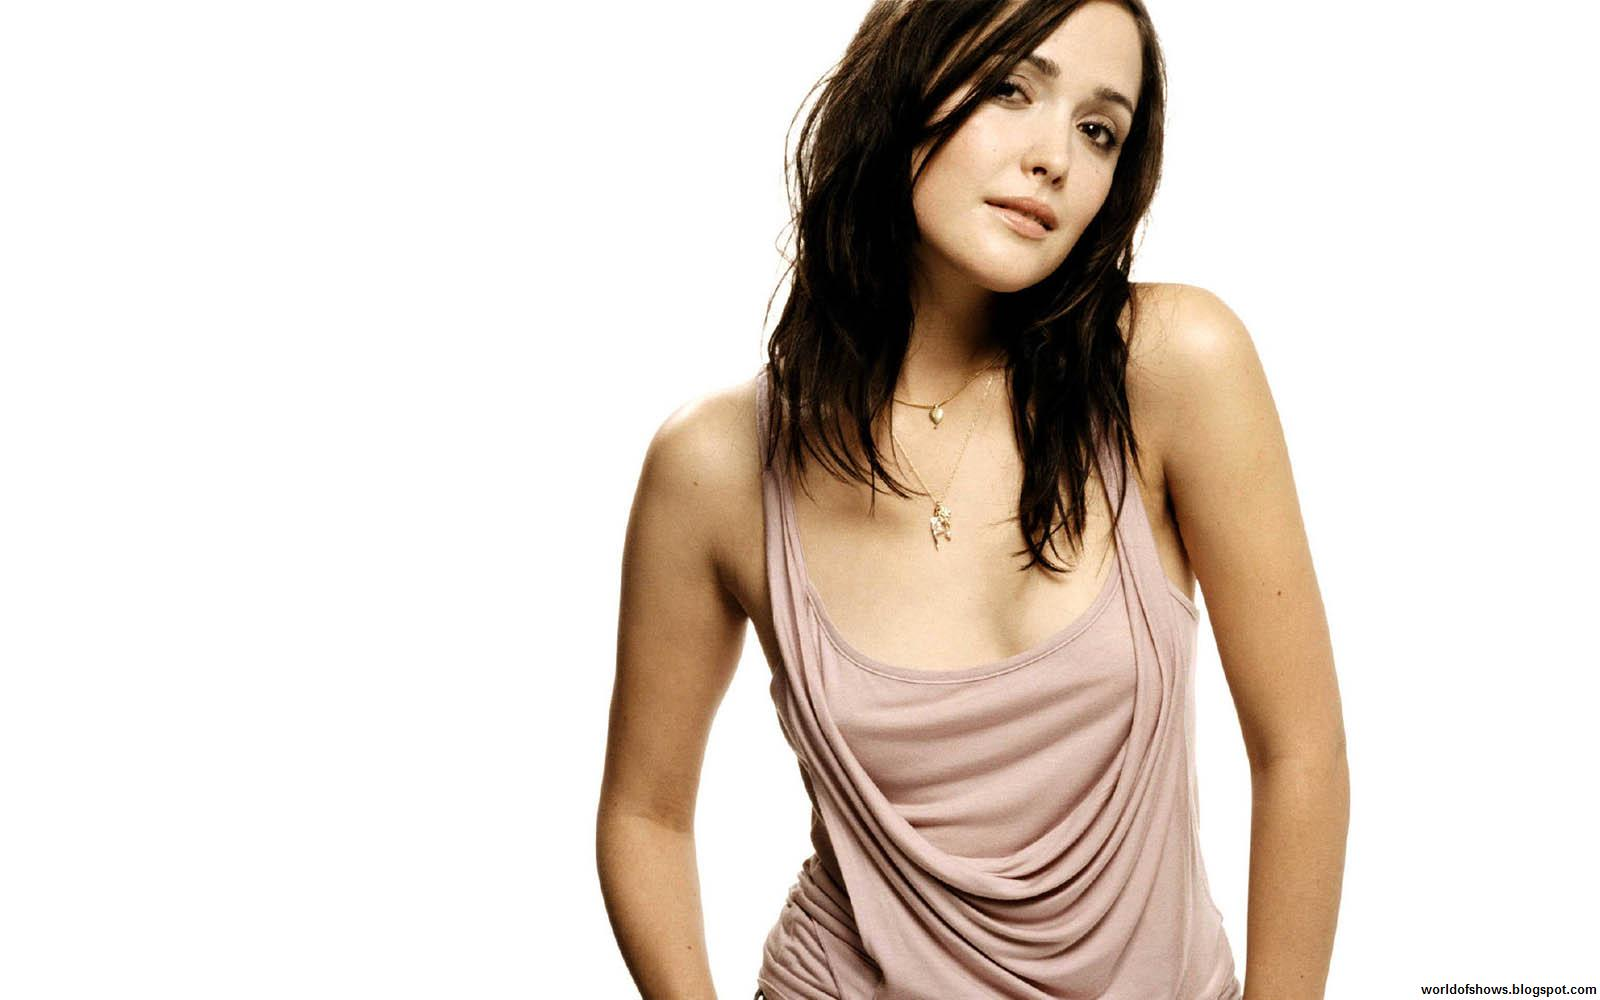 http://1.bp.blogspot.com/-SkkN4hDSfr4/T_7Vjo5A5KI/AAAAAAAAGyc/fGhHXaybrCk/s1600/Rose_Byrne_Beautiful_And_Sexy_Australian_Actress_First_Class_Lady_Hd_Desktop_Wallpaper_worldofshows.blogspot.com.jpg